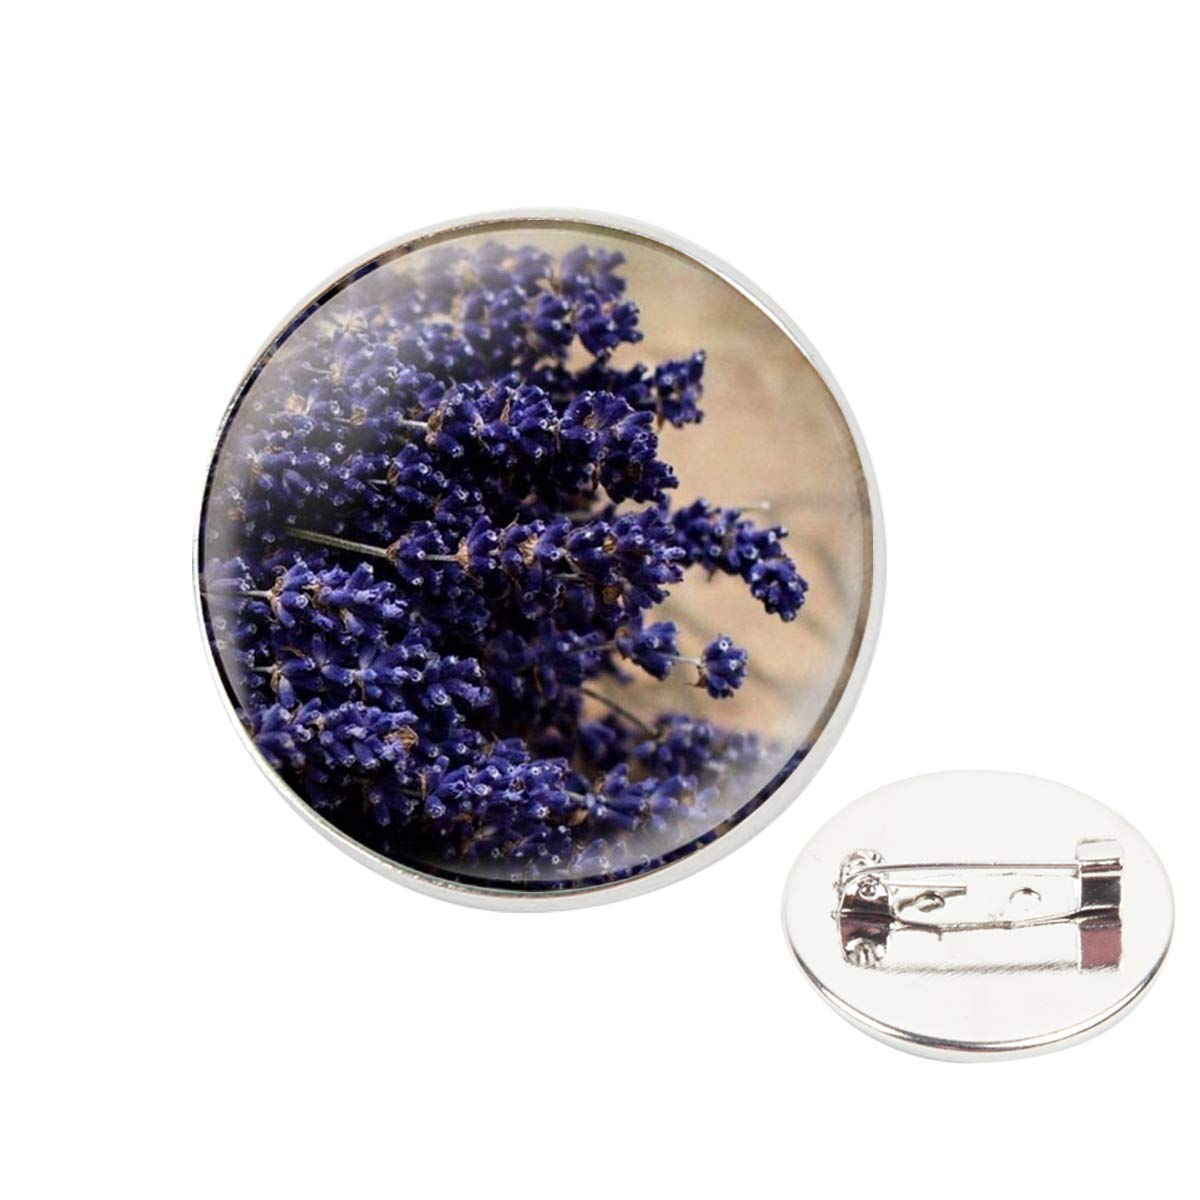 Pinback Buttons Badges Pins Small Wild Lavender Flower Lapel Pin Brooch Clip Trendy Accessory Jacket T-Shirt Bag Hat Shoe